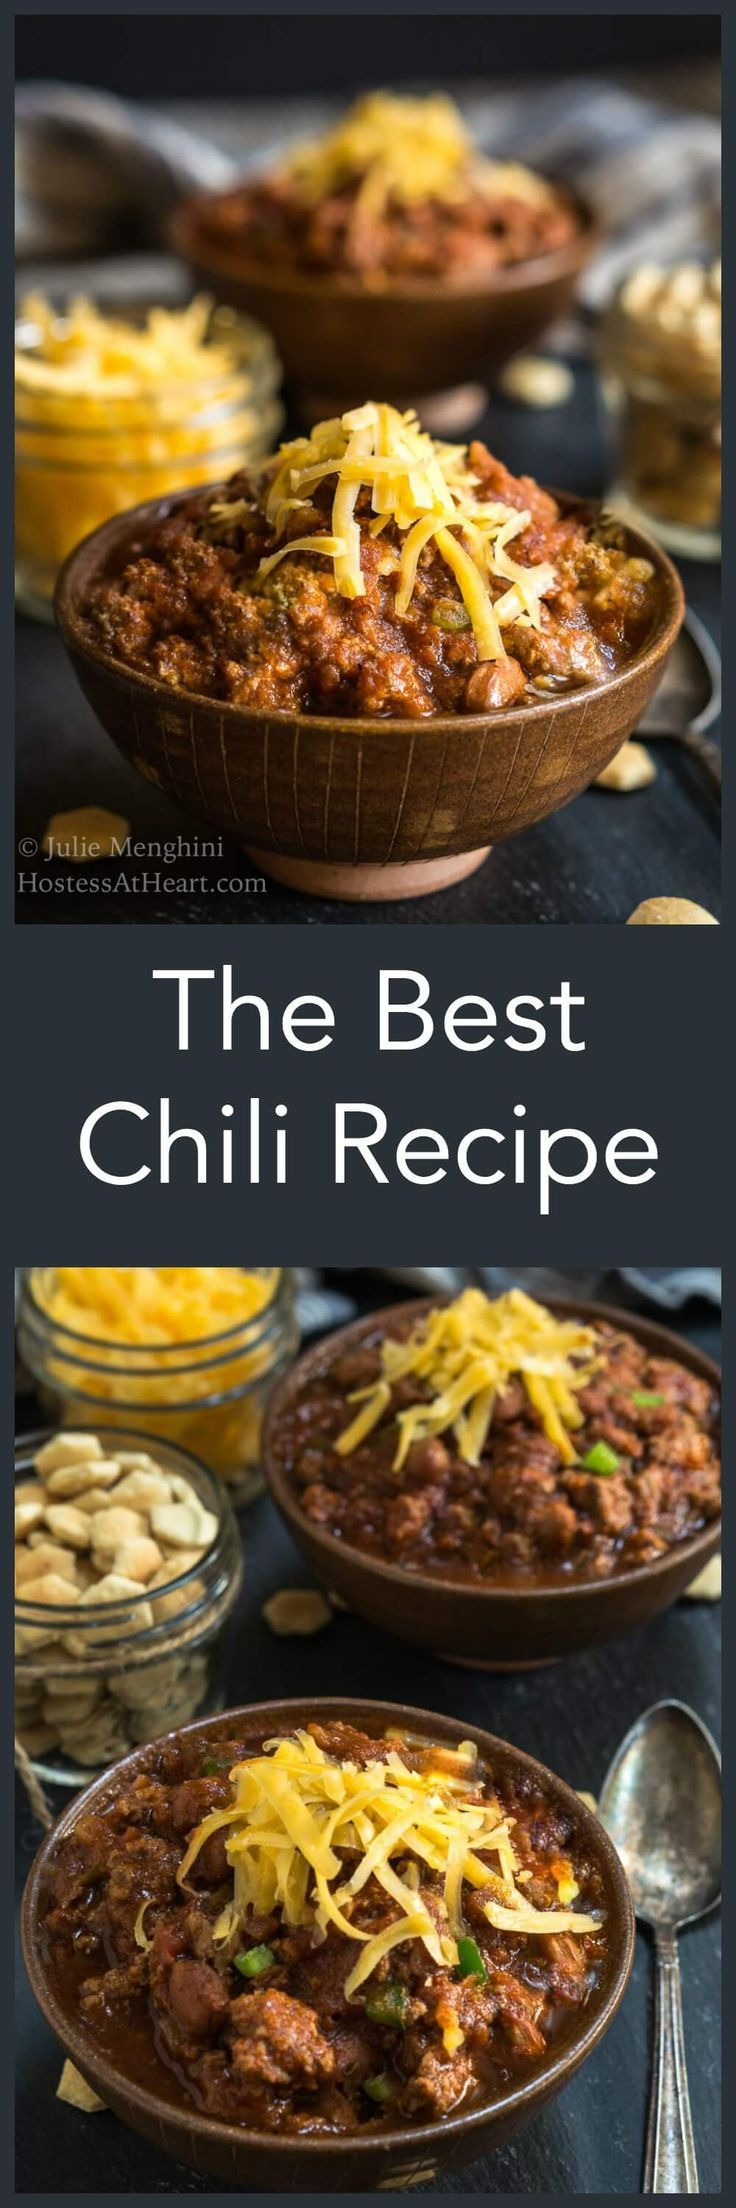 The Best Chili Recipe will change the way you make chili from now on. It has a secret ingredient that takes this dish to the next level. It's easy to make and makes enough for a crowd | HostessAtHeart.com #chili #chilirecipe #homemadesoup #souprecipes  homemade chili from scratch, easy chili recipe, easy beef chili via @HostessAtHeart